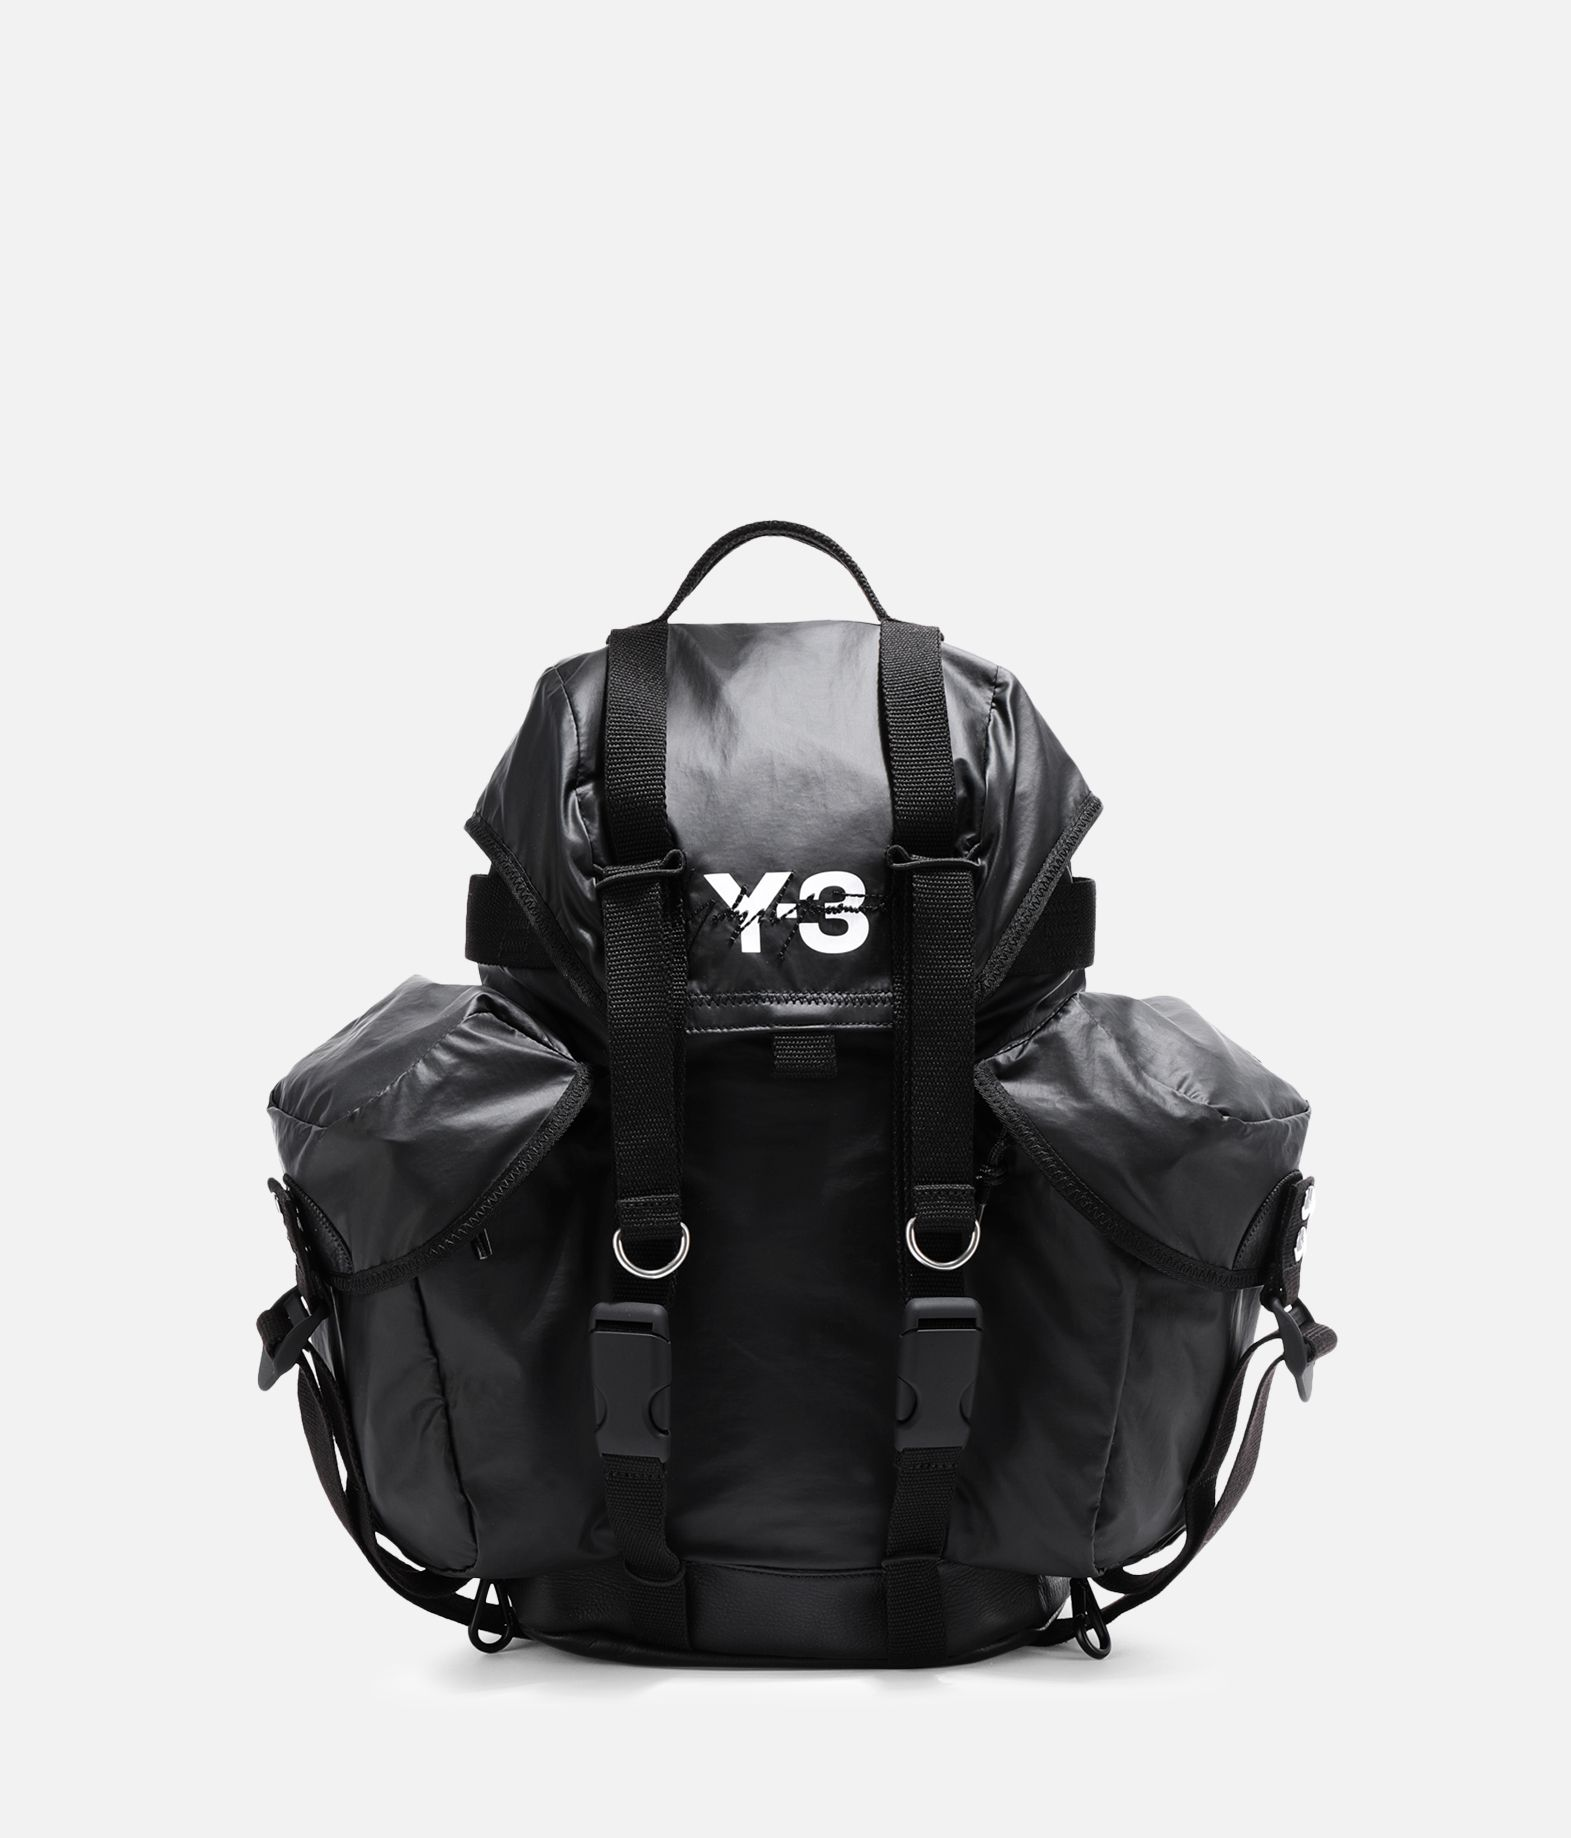 Y-3 Y-3 XS Utility Bag Backpack E f